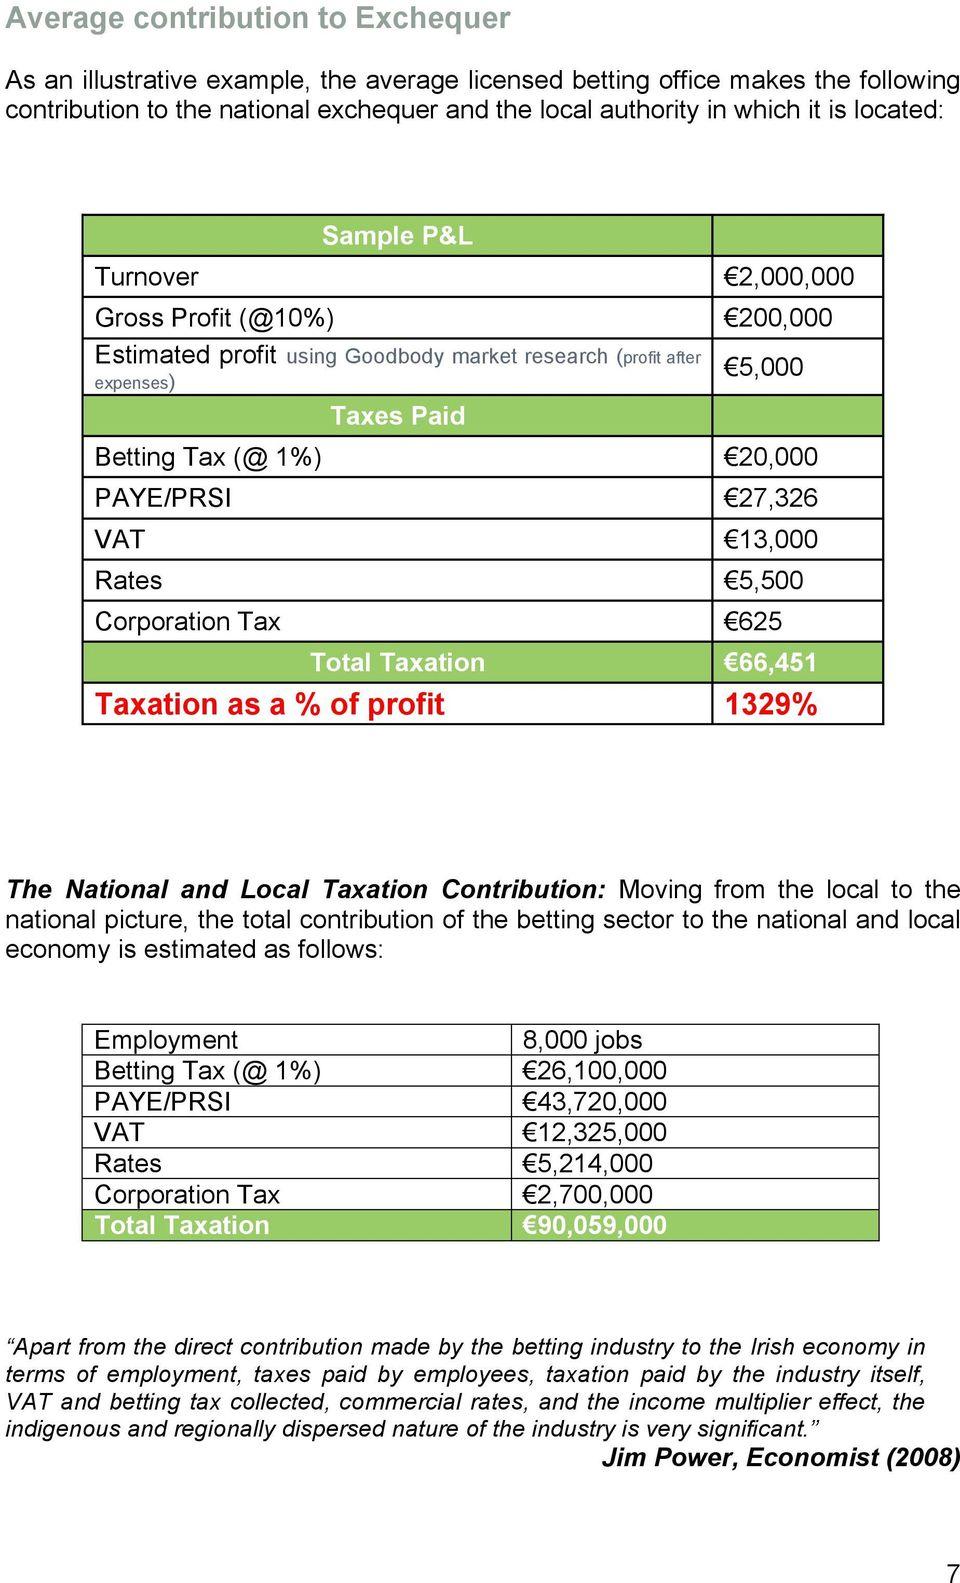 VAT 13,000 Rates 5,500 Corporation Tax 625 Total Taxation 66,451 Taxation as a % of profit 1329% The National and Local Taxation Contribution: Moving from the local to the national picture, the total